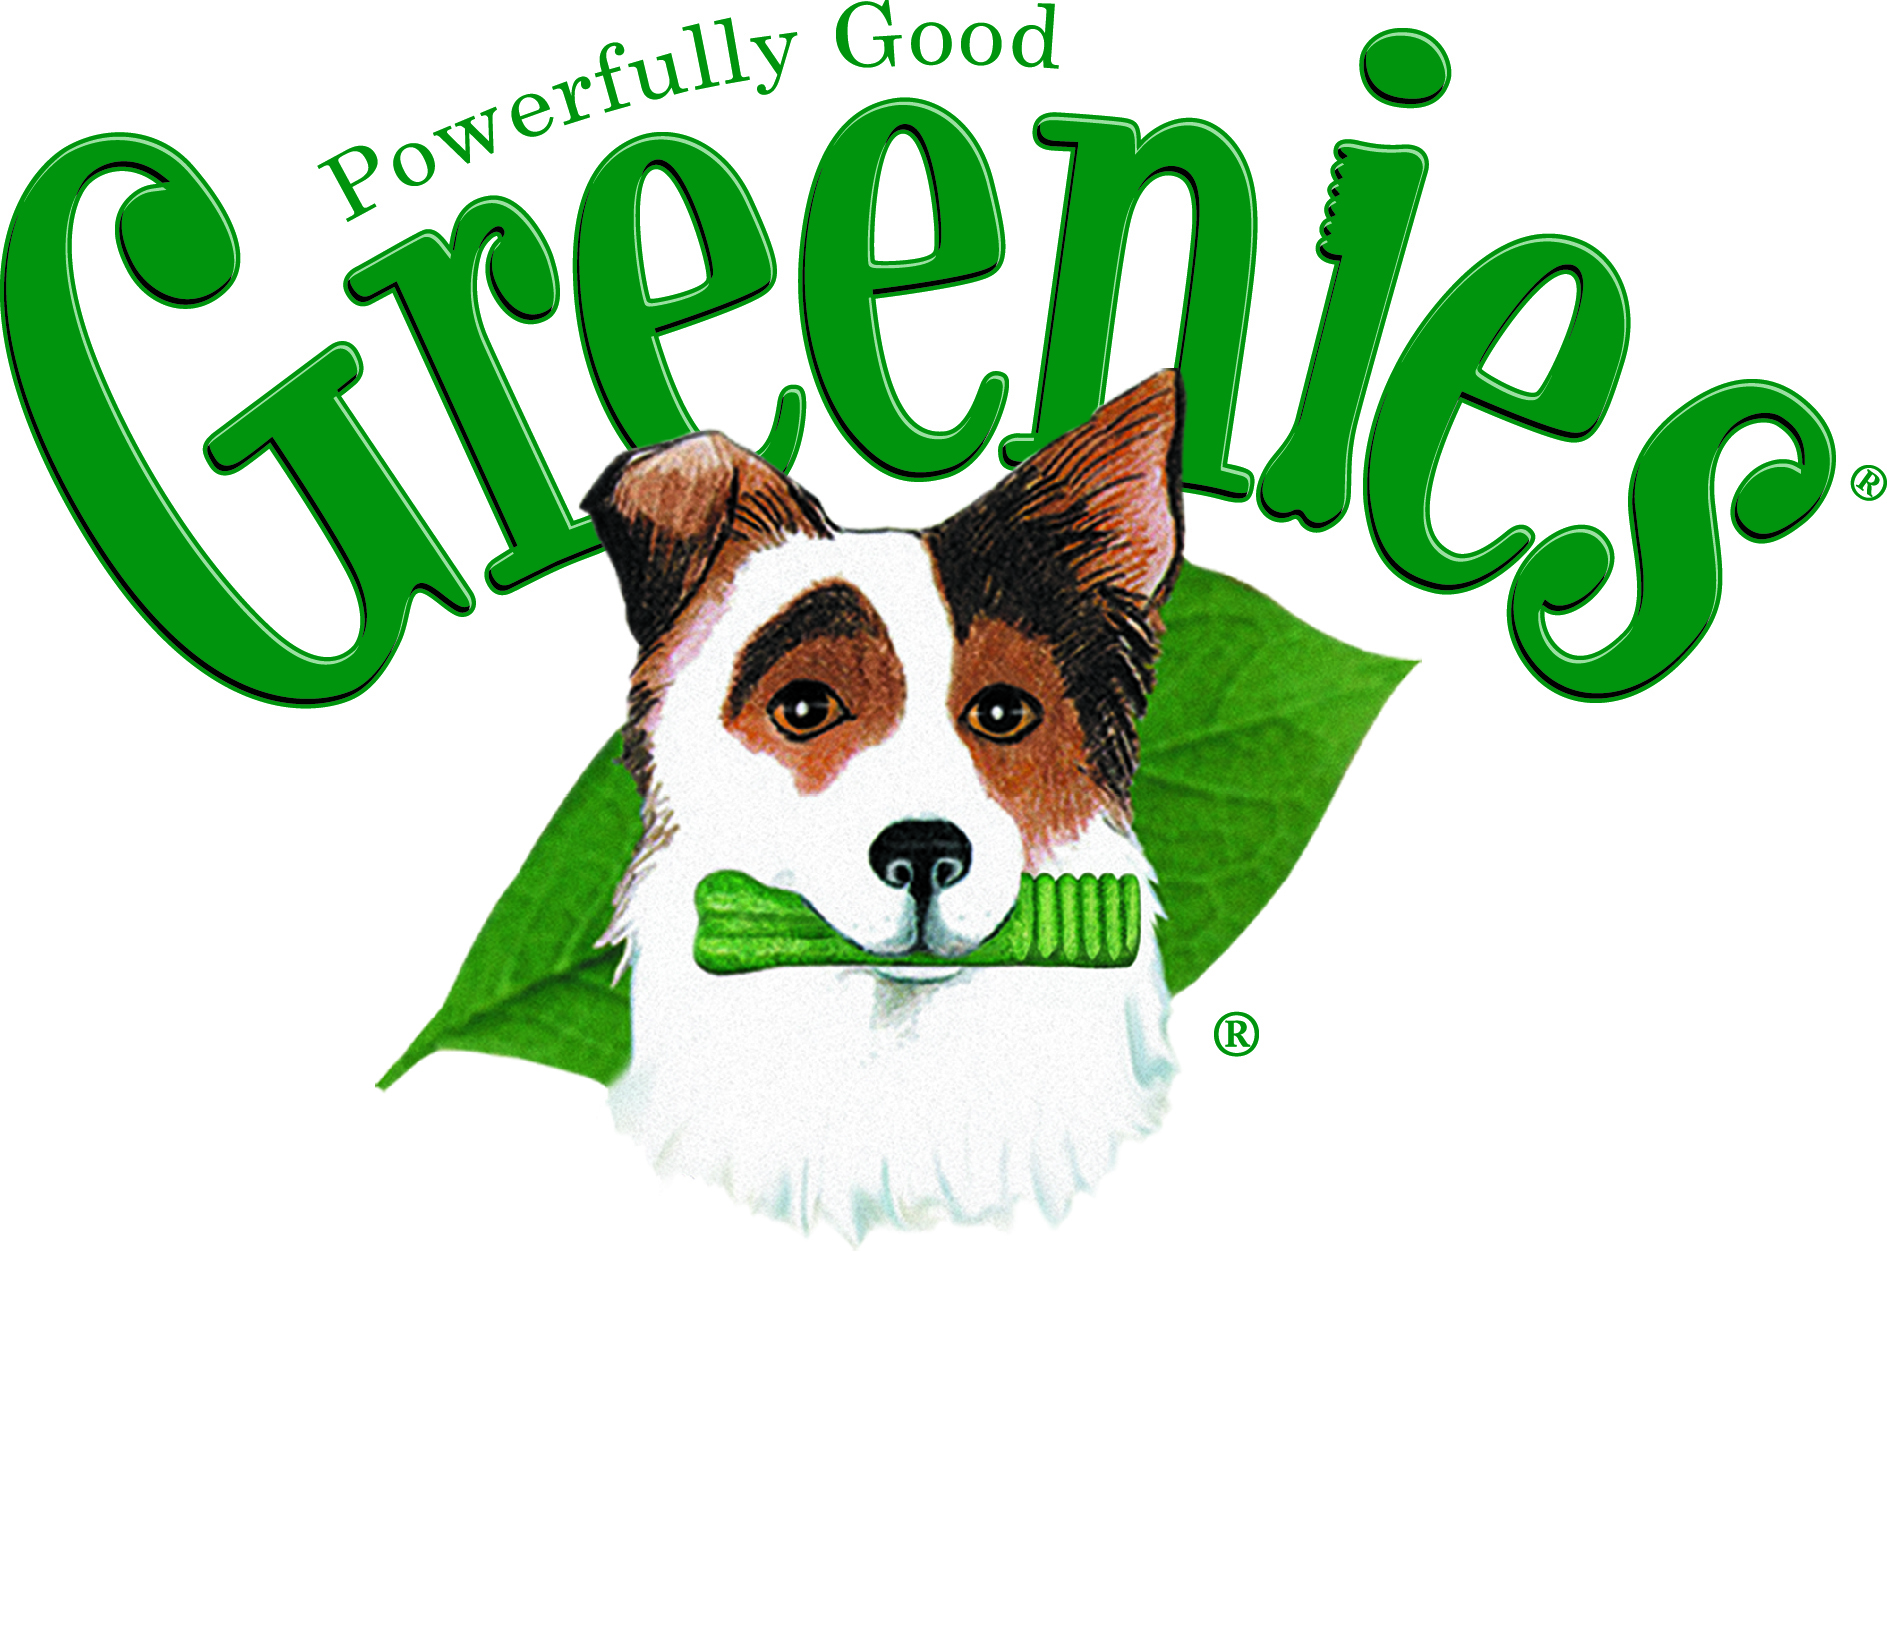 Read Greenies Reviews